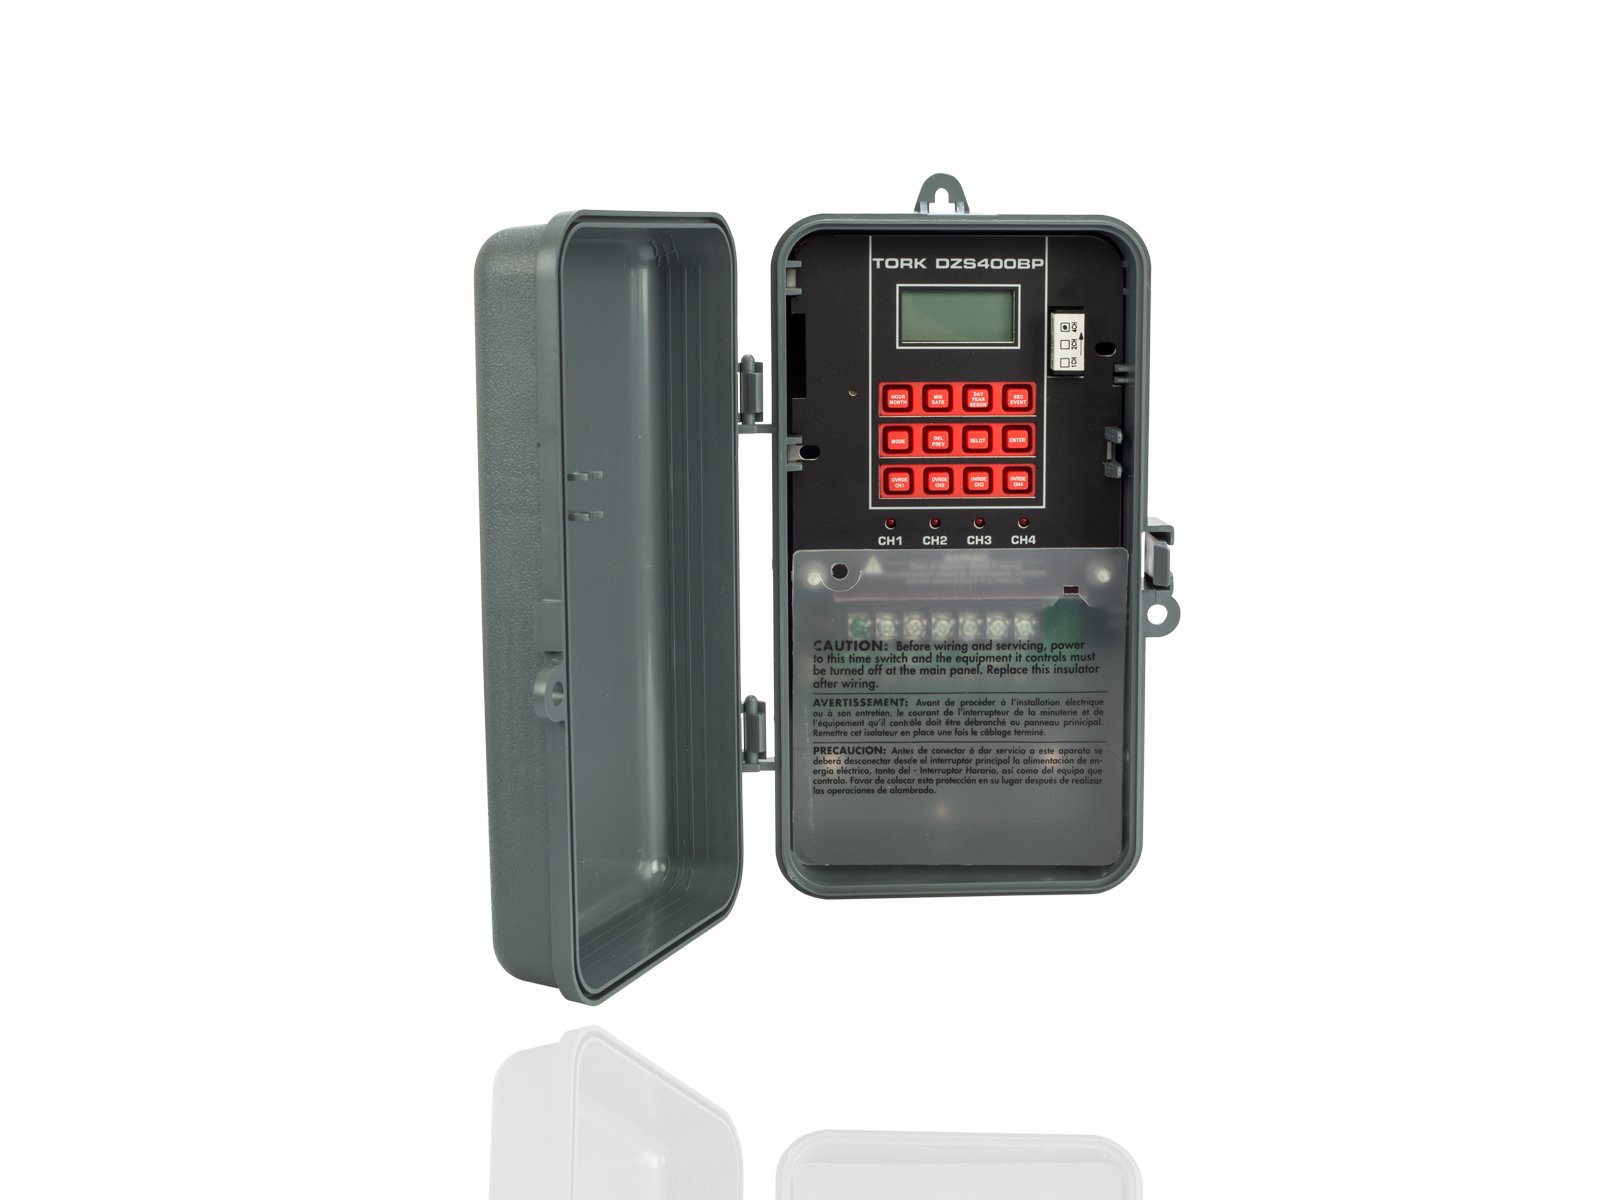 DZS Series Multipurpose Control 365/7 Day Advanced Time Switch, 120/208-240/277 VAC Timer Supply, 4 Channels, SPDT Dry Contact